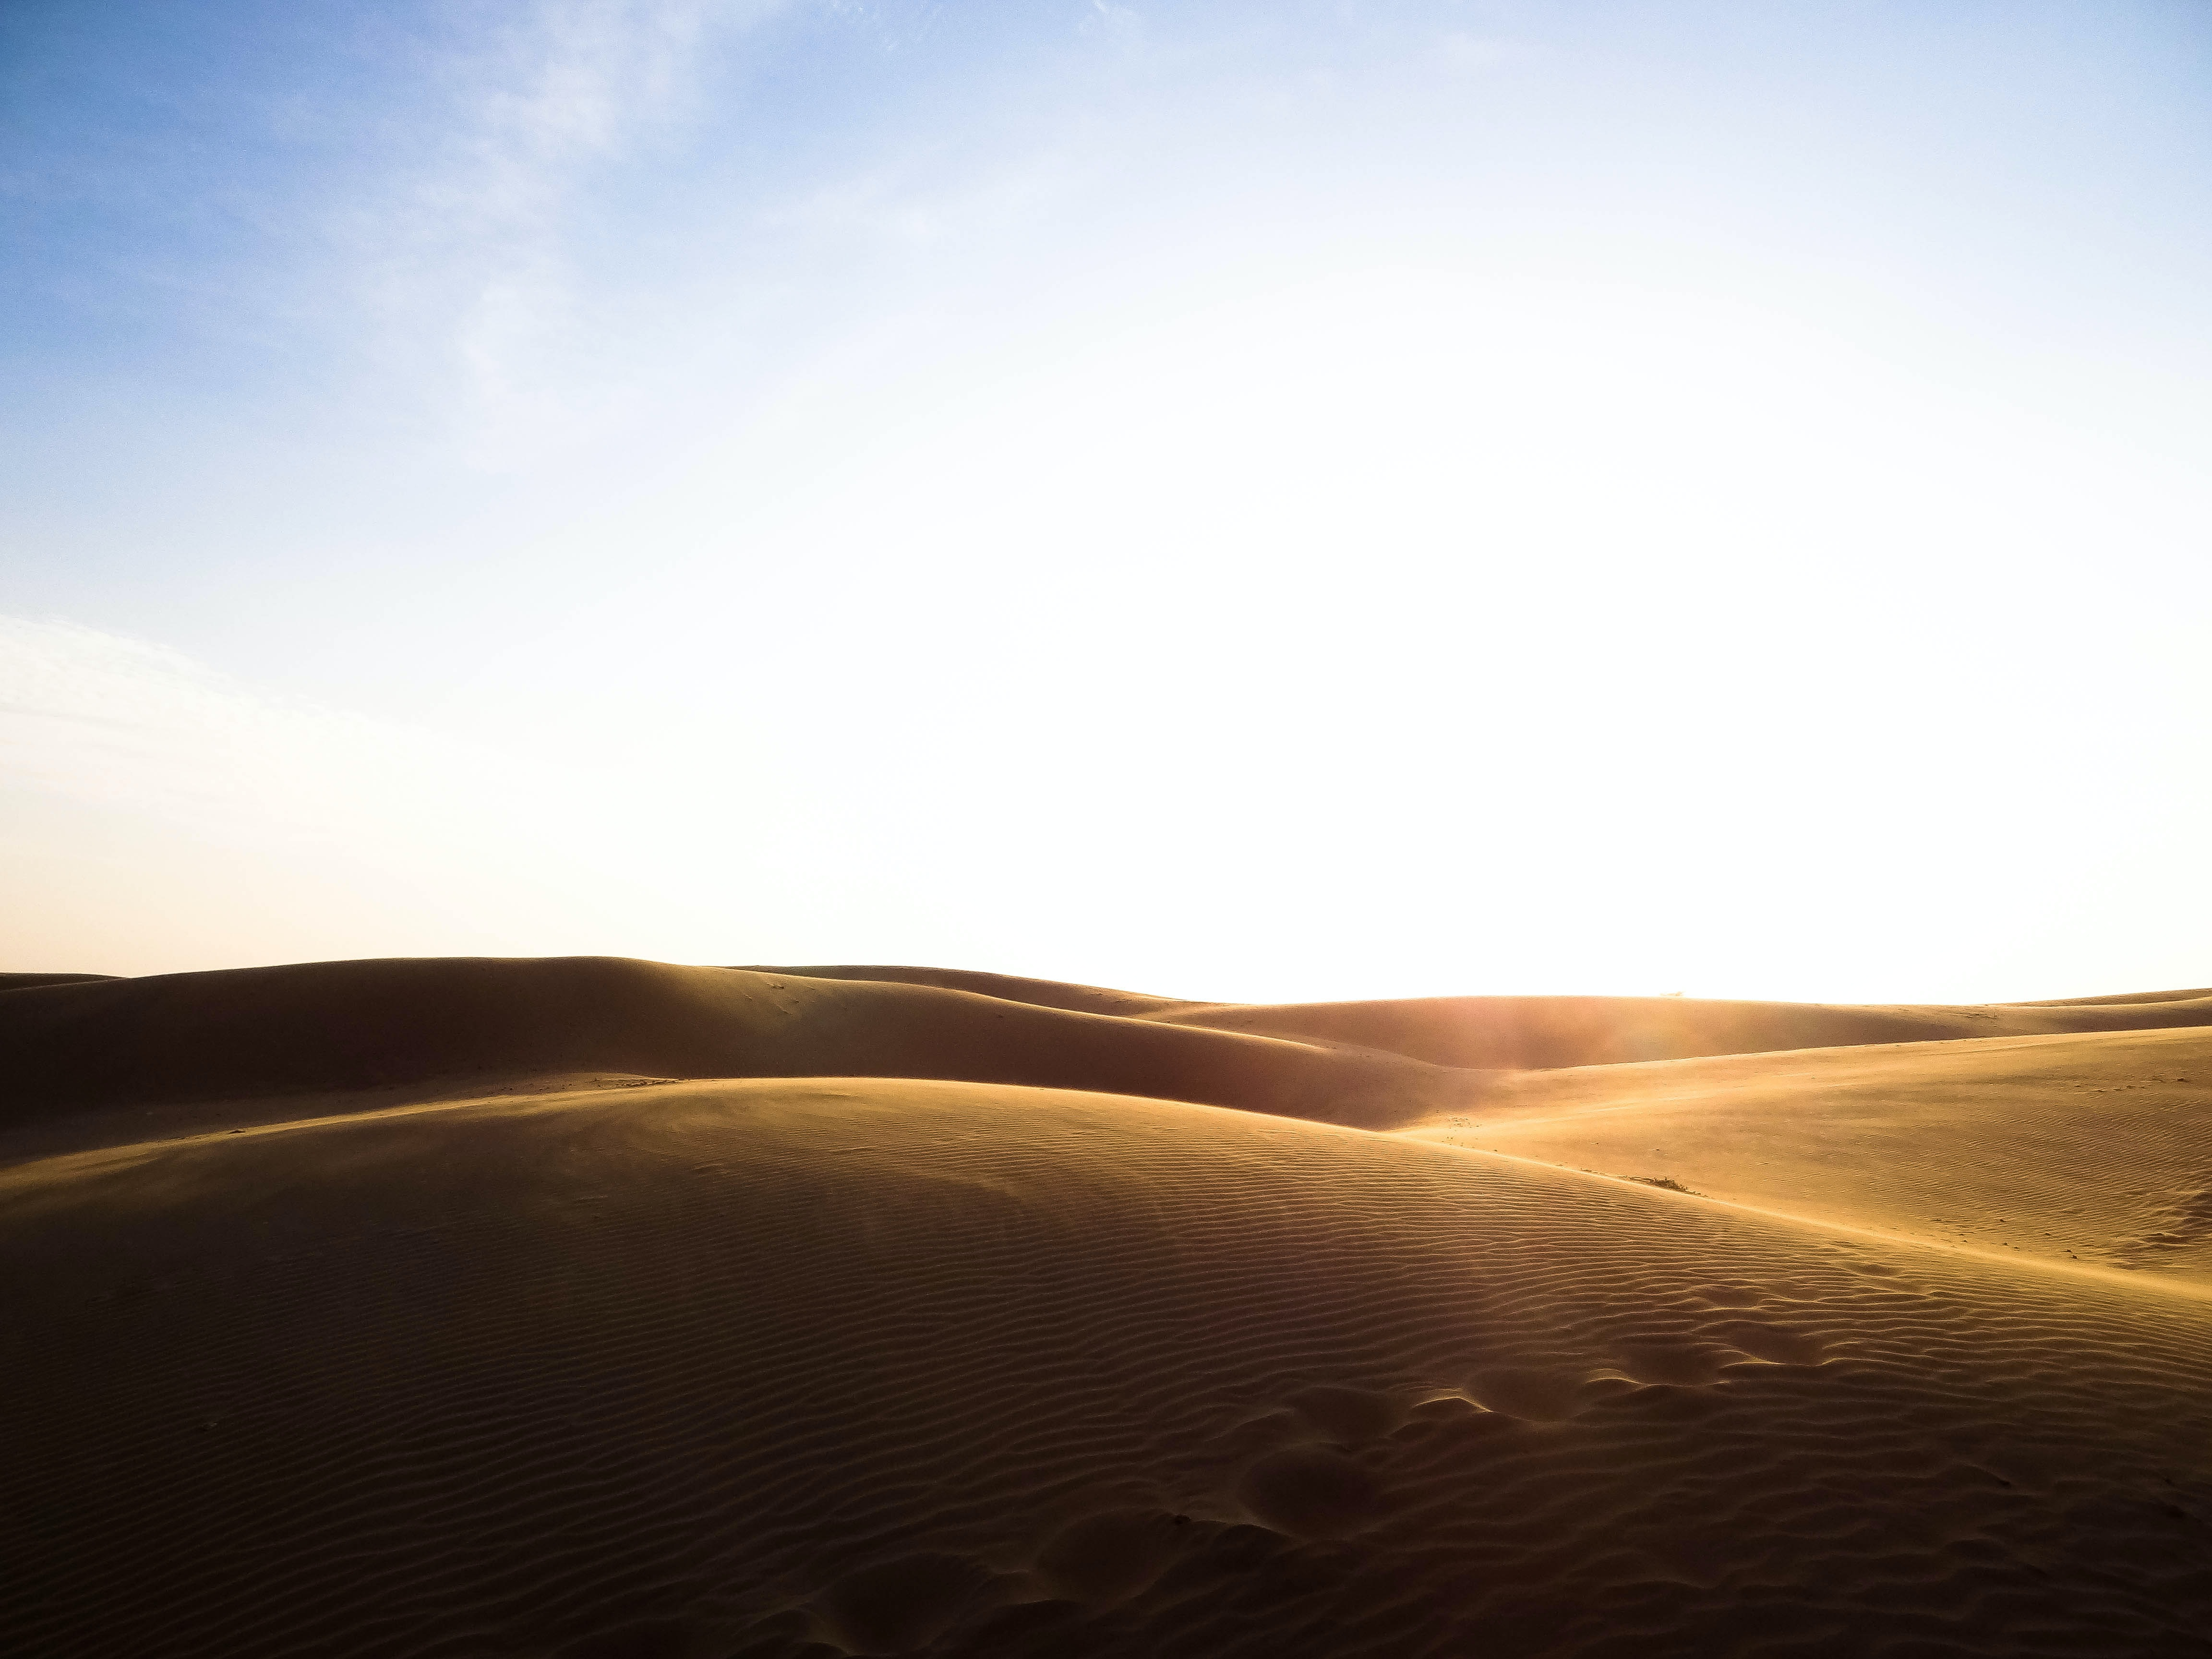 landscape photography of sand during daytime